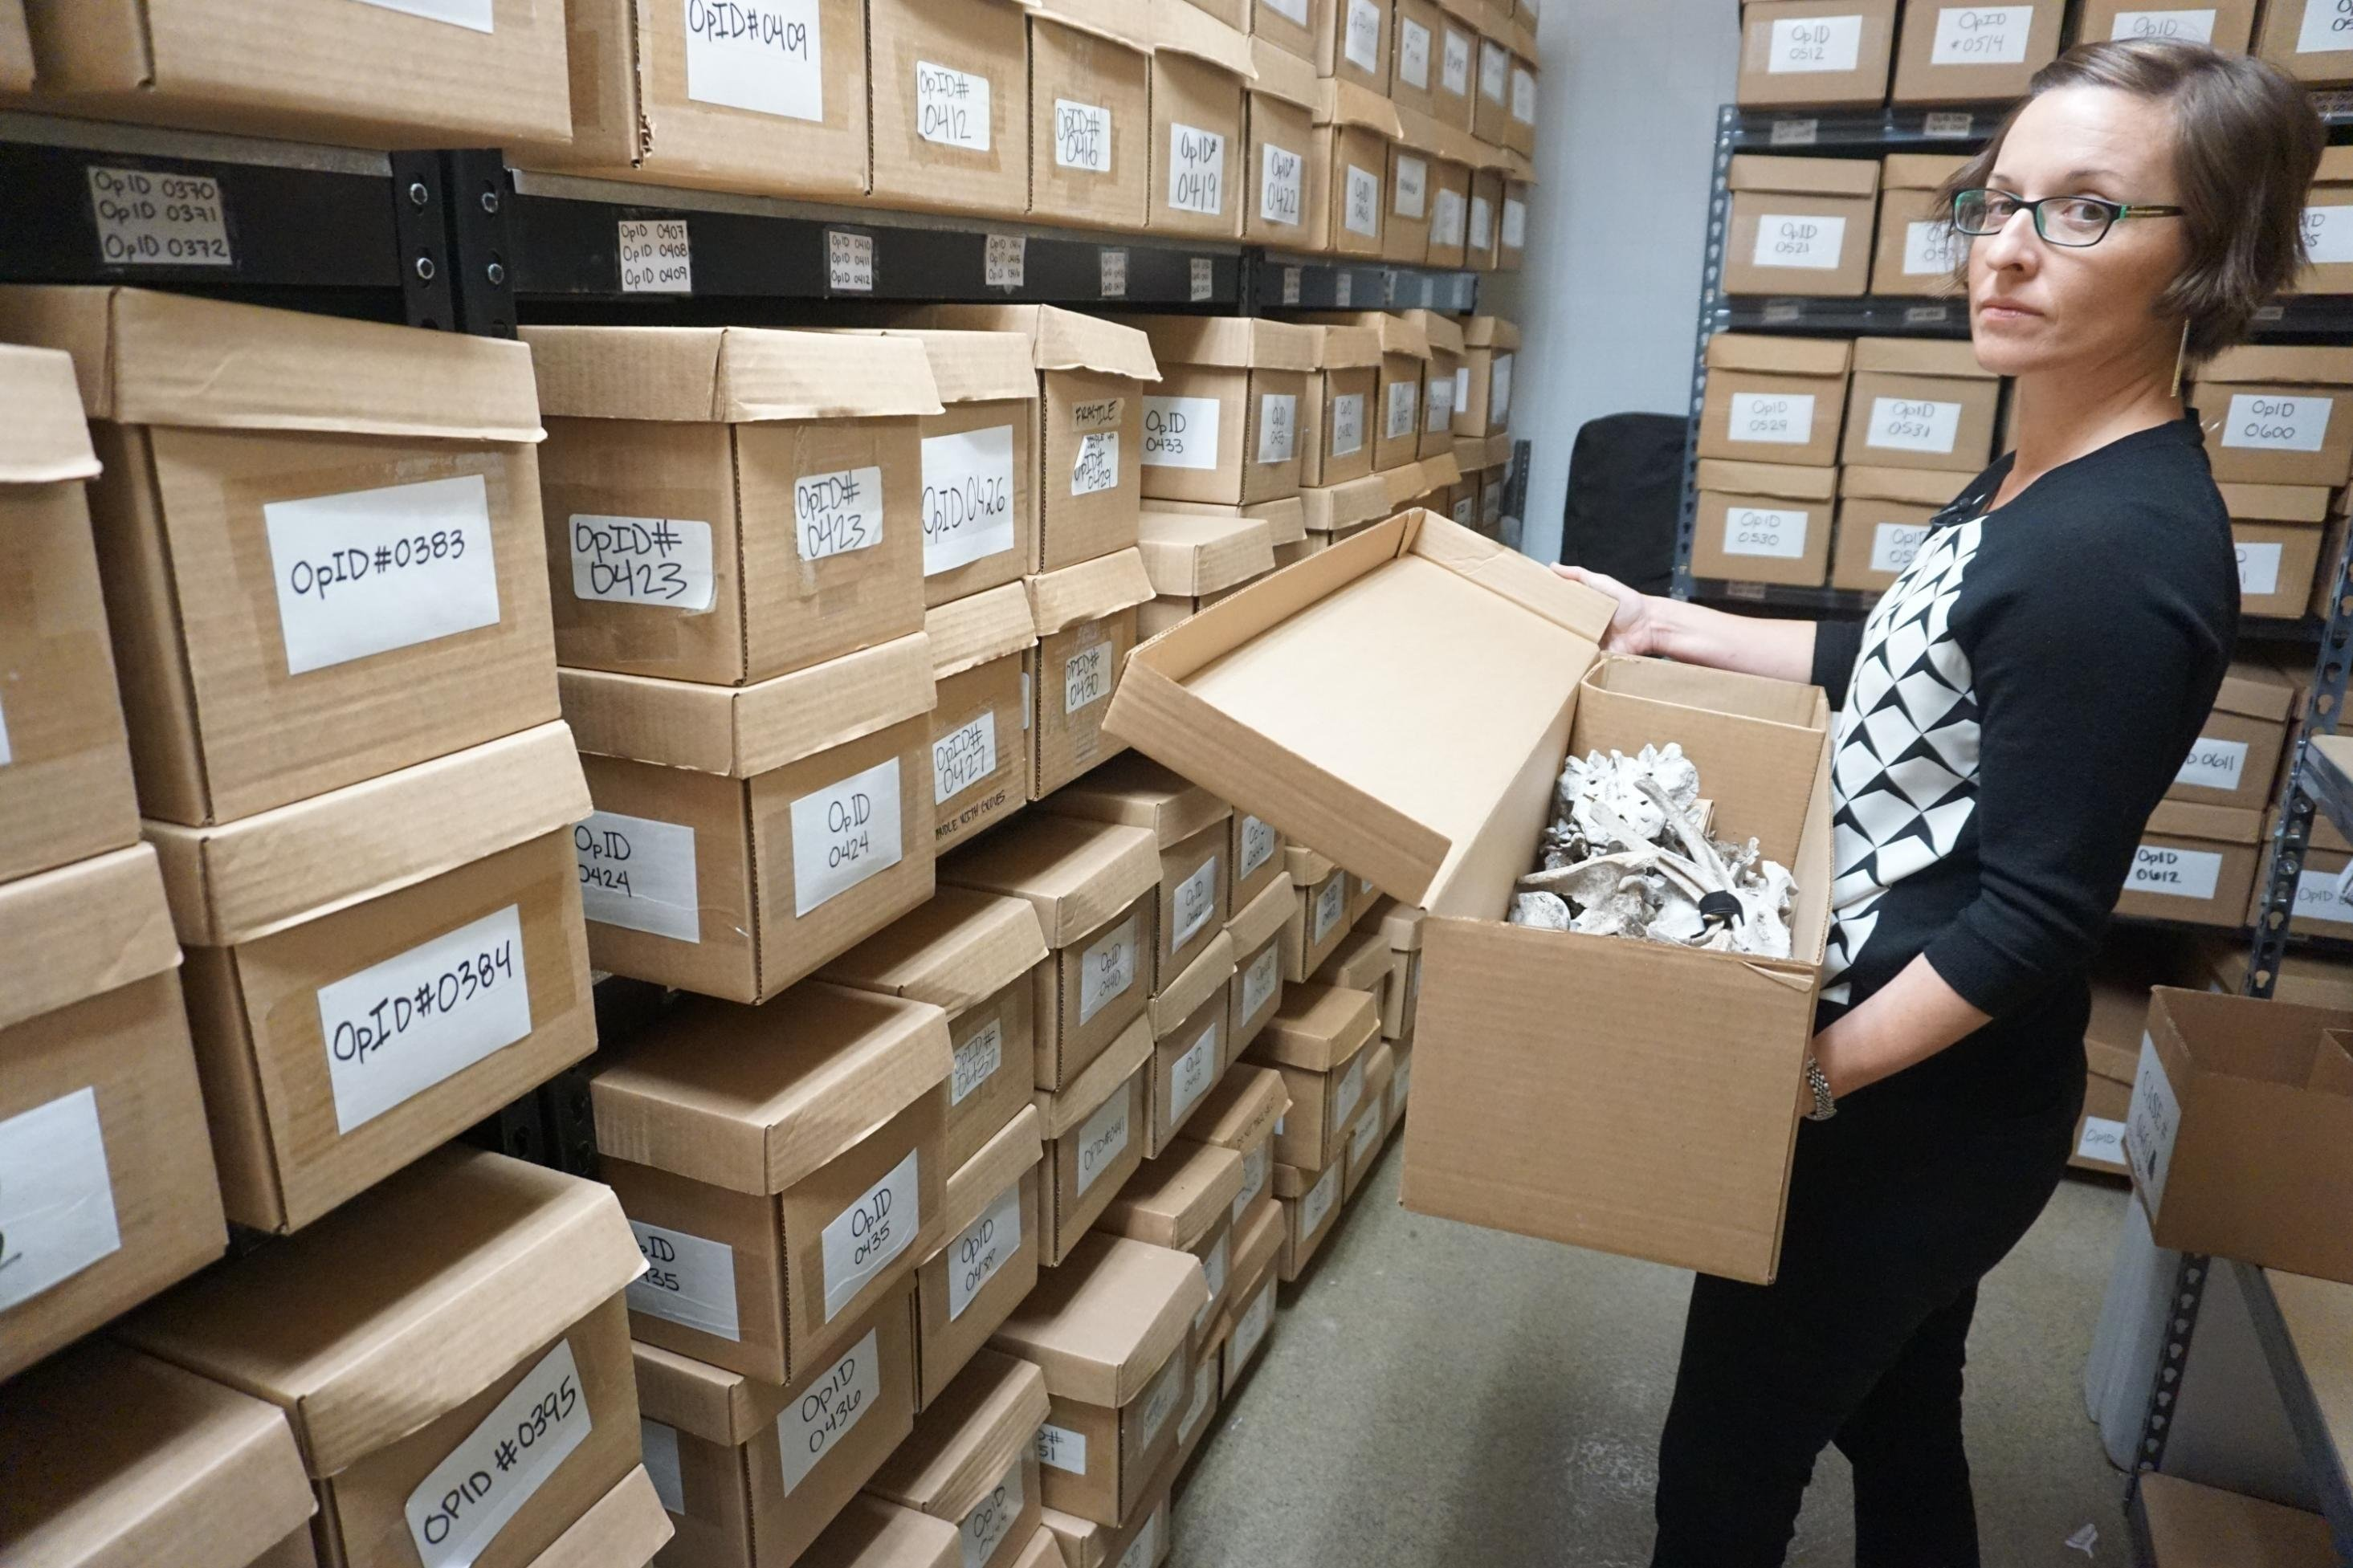 Kate Spradley, a forensic anthropologist in her lab at Texas State University, is trying to identify hundreds of bodies. Each box holds the remains of one person who died migrating to the United States.